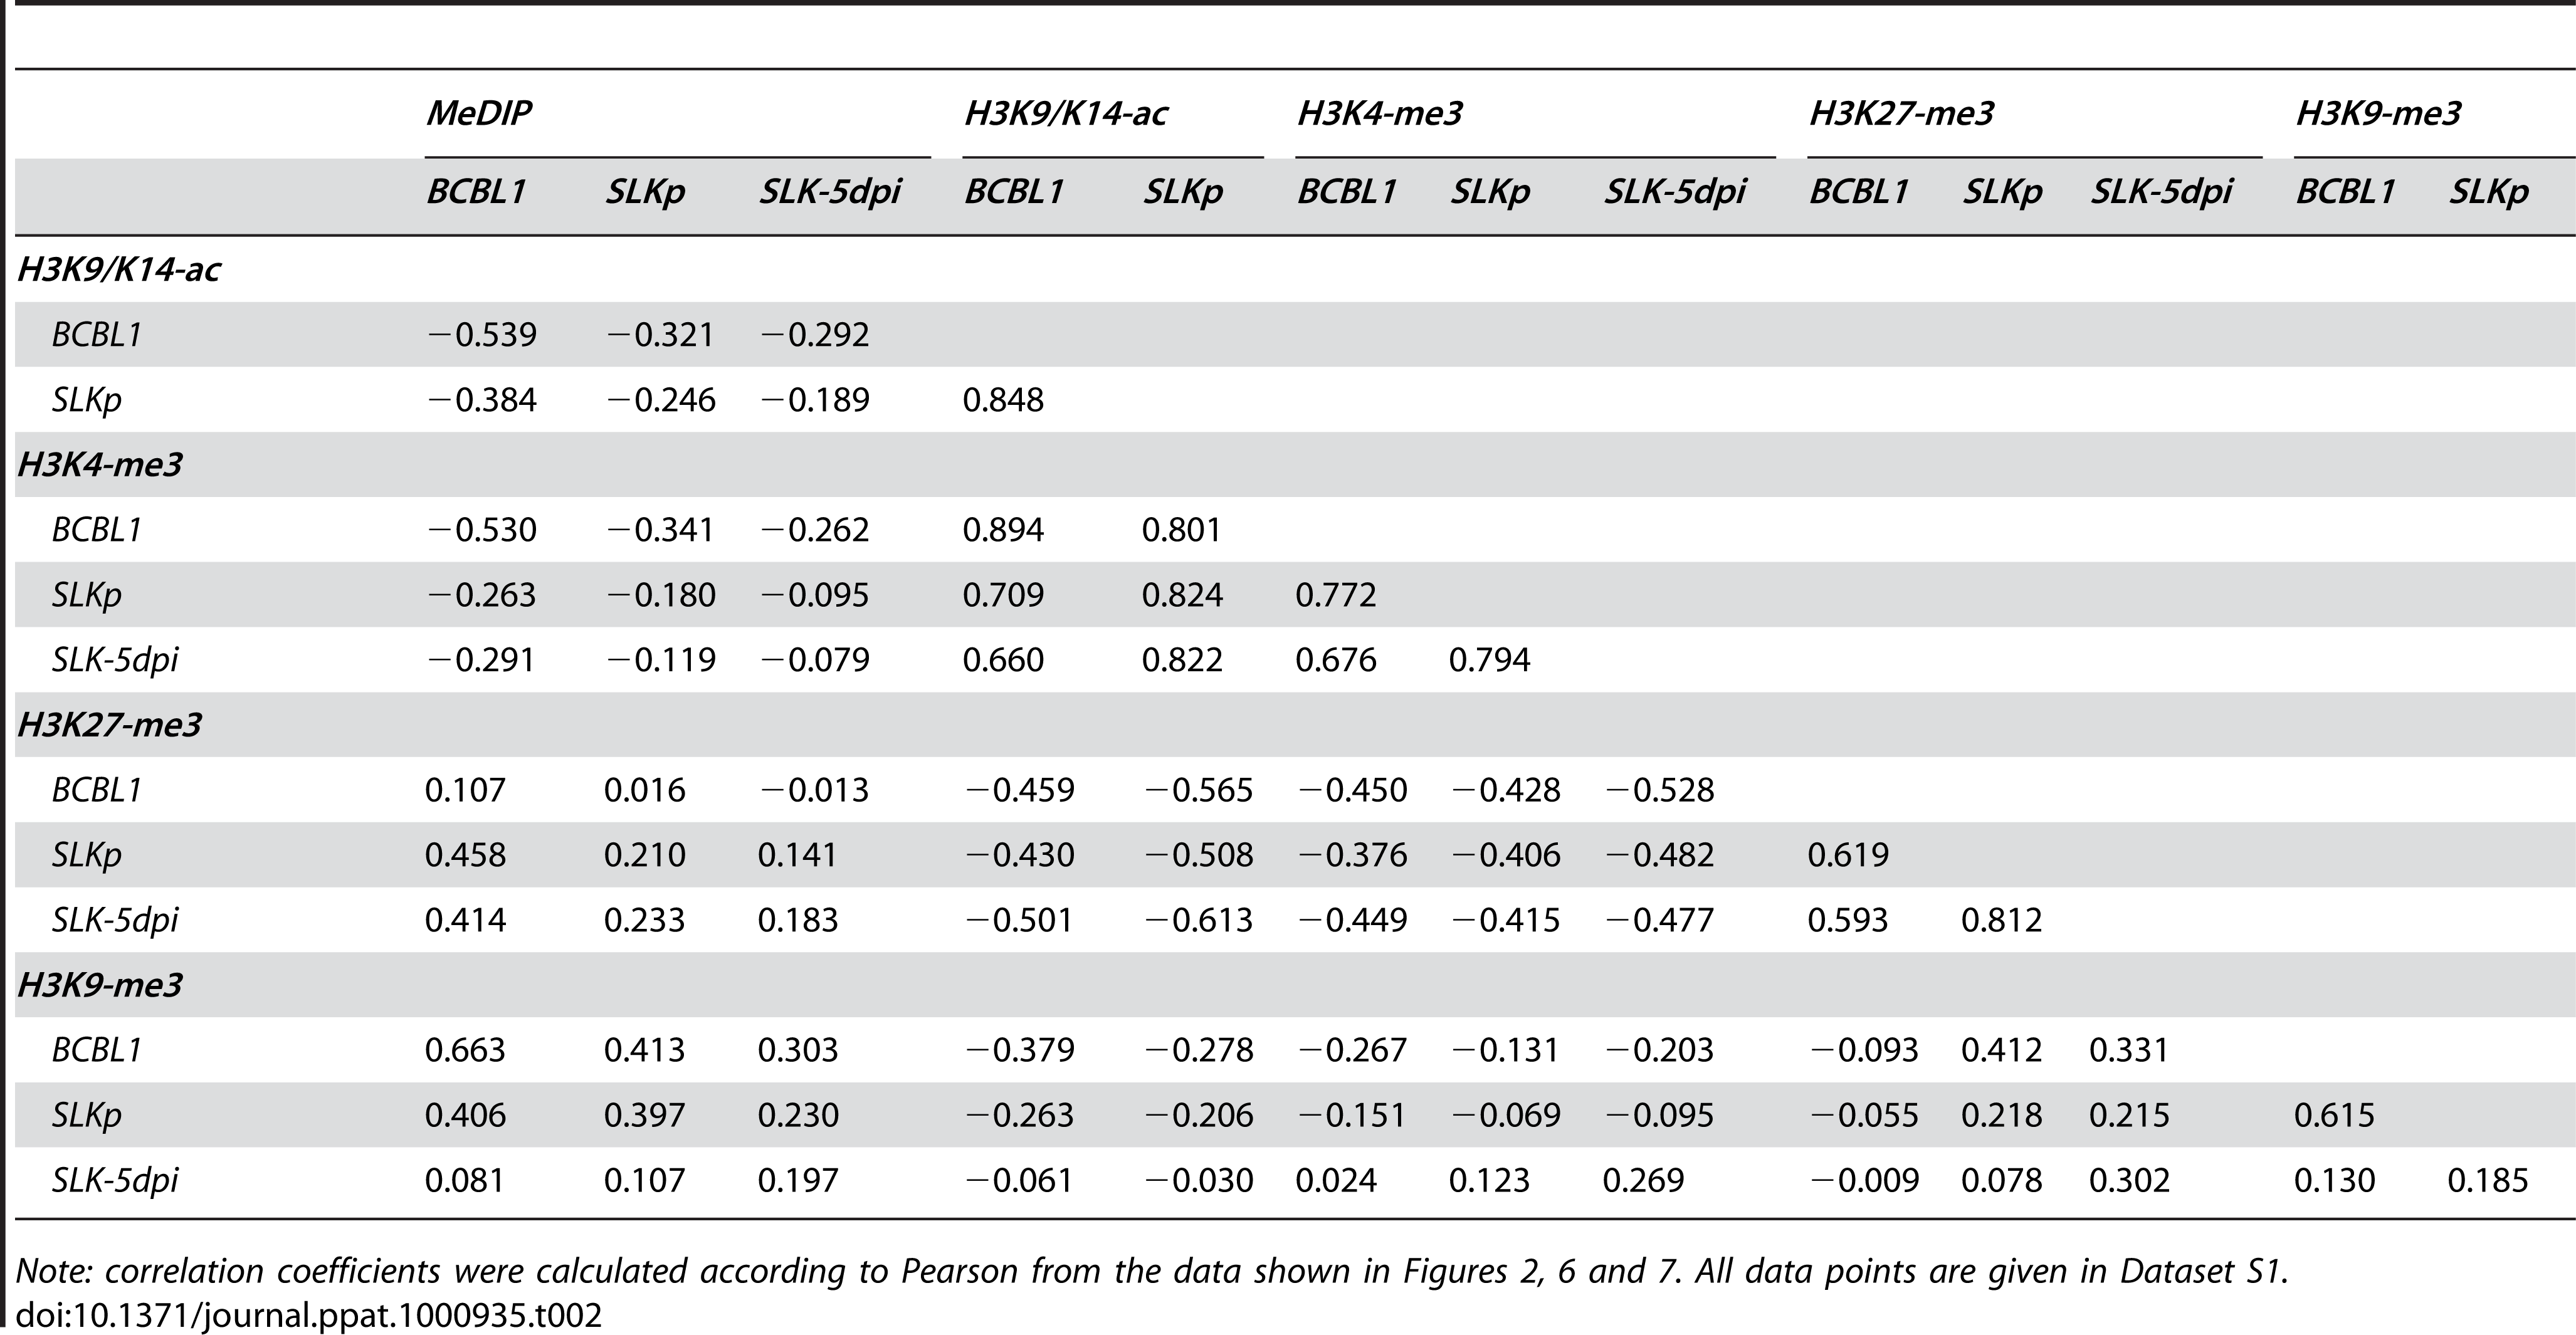 Pearson correlation coefficients of DNA methylation and histone modification patterns.